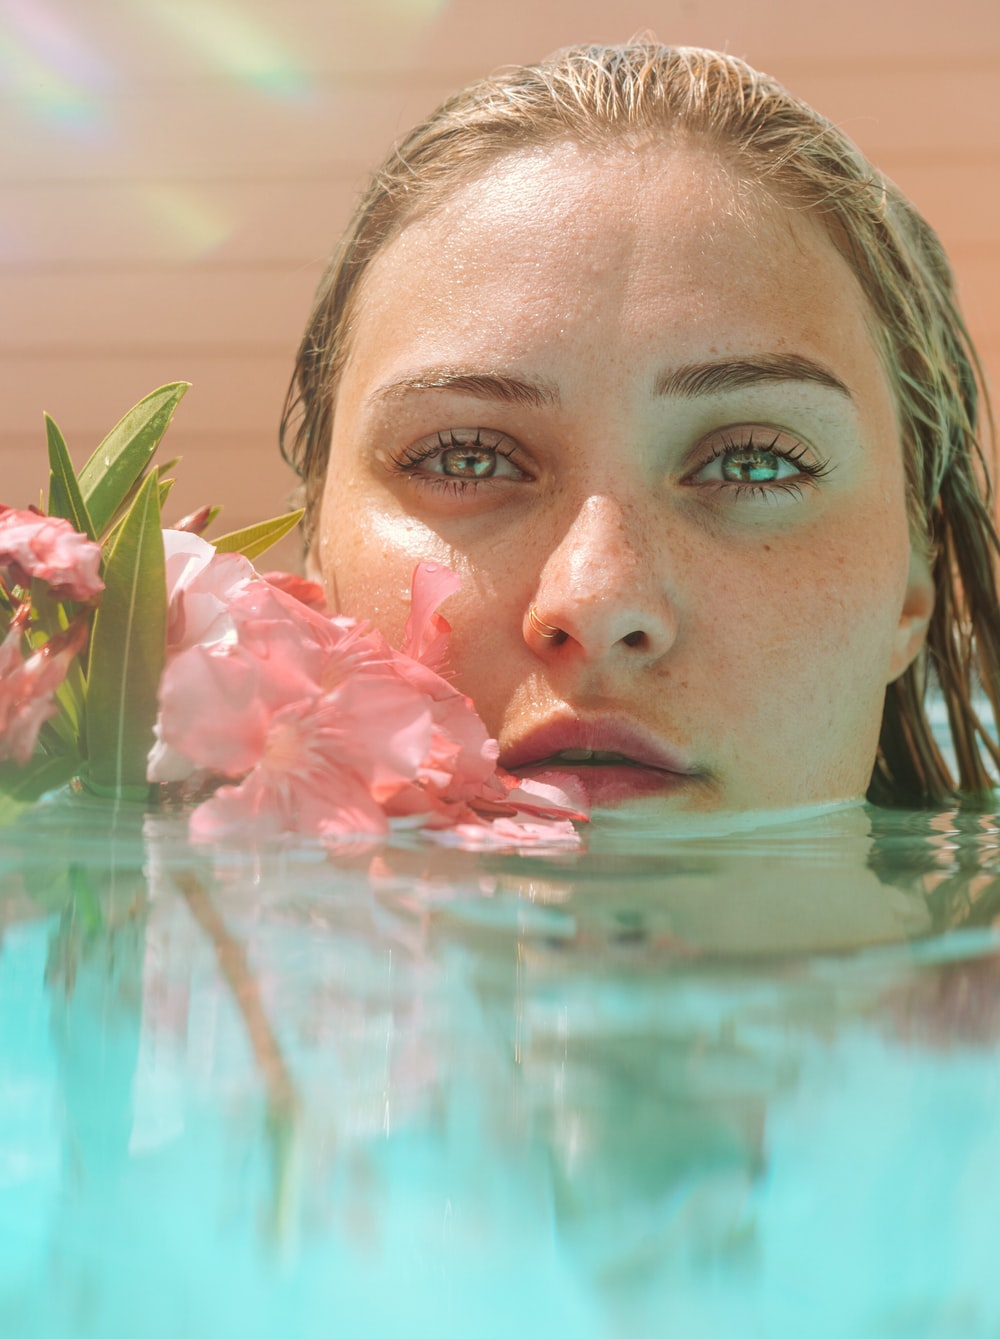 woman in water with pink flower petals